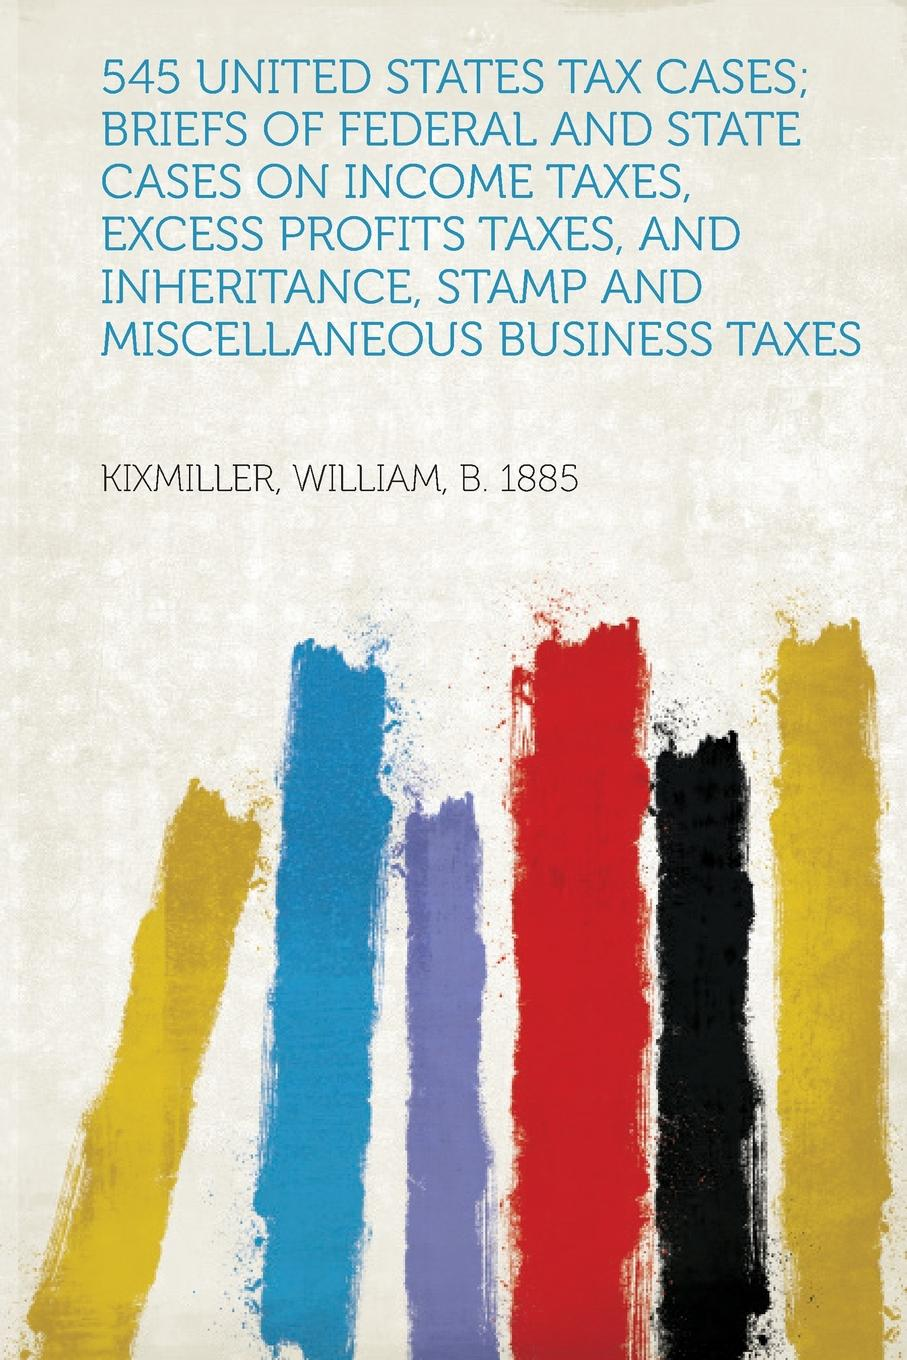 545 United States Tax Cases; Briefs of Federal and State Cases on Income Taxes, Excess Profits Taxes, and Inheritance, Stamp and Miscellaneous Busines george edwin holmes 1921 supplement to federal income tax war profits and excess profits taxes including stamp taxes and capital stock tax